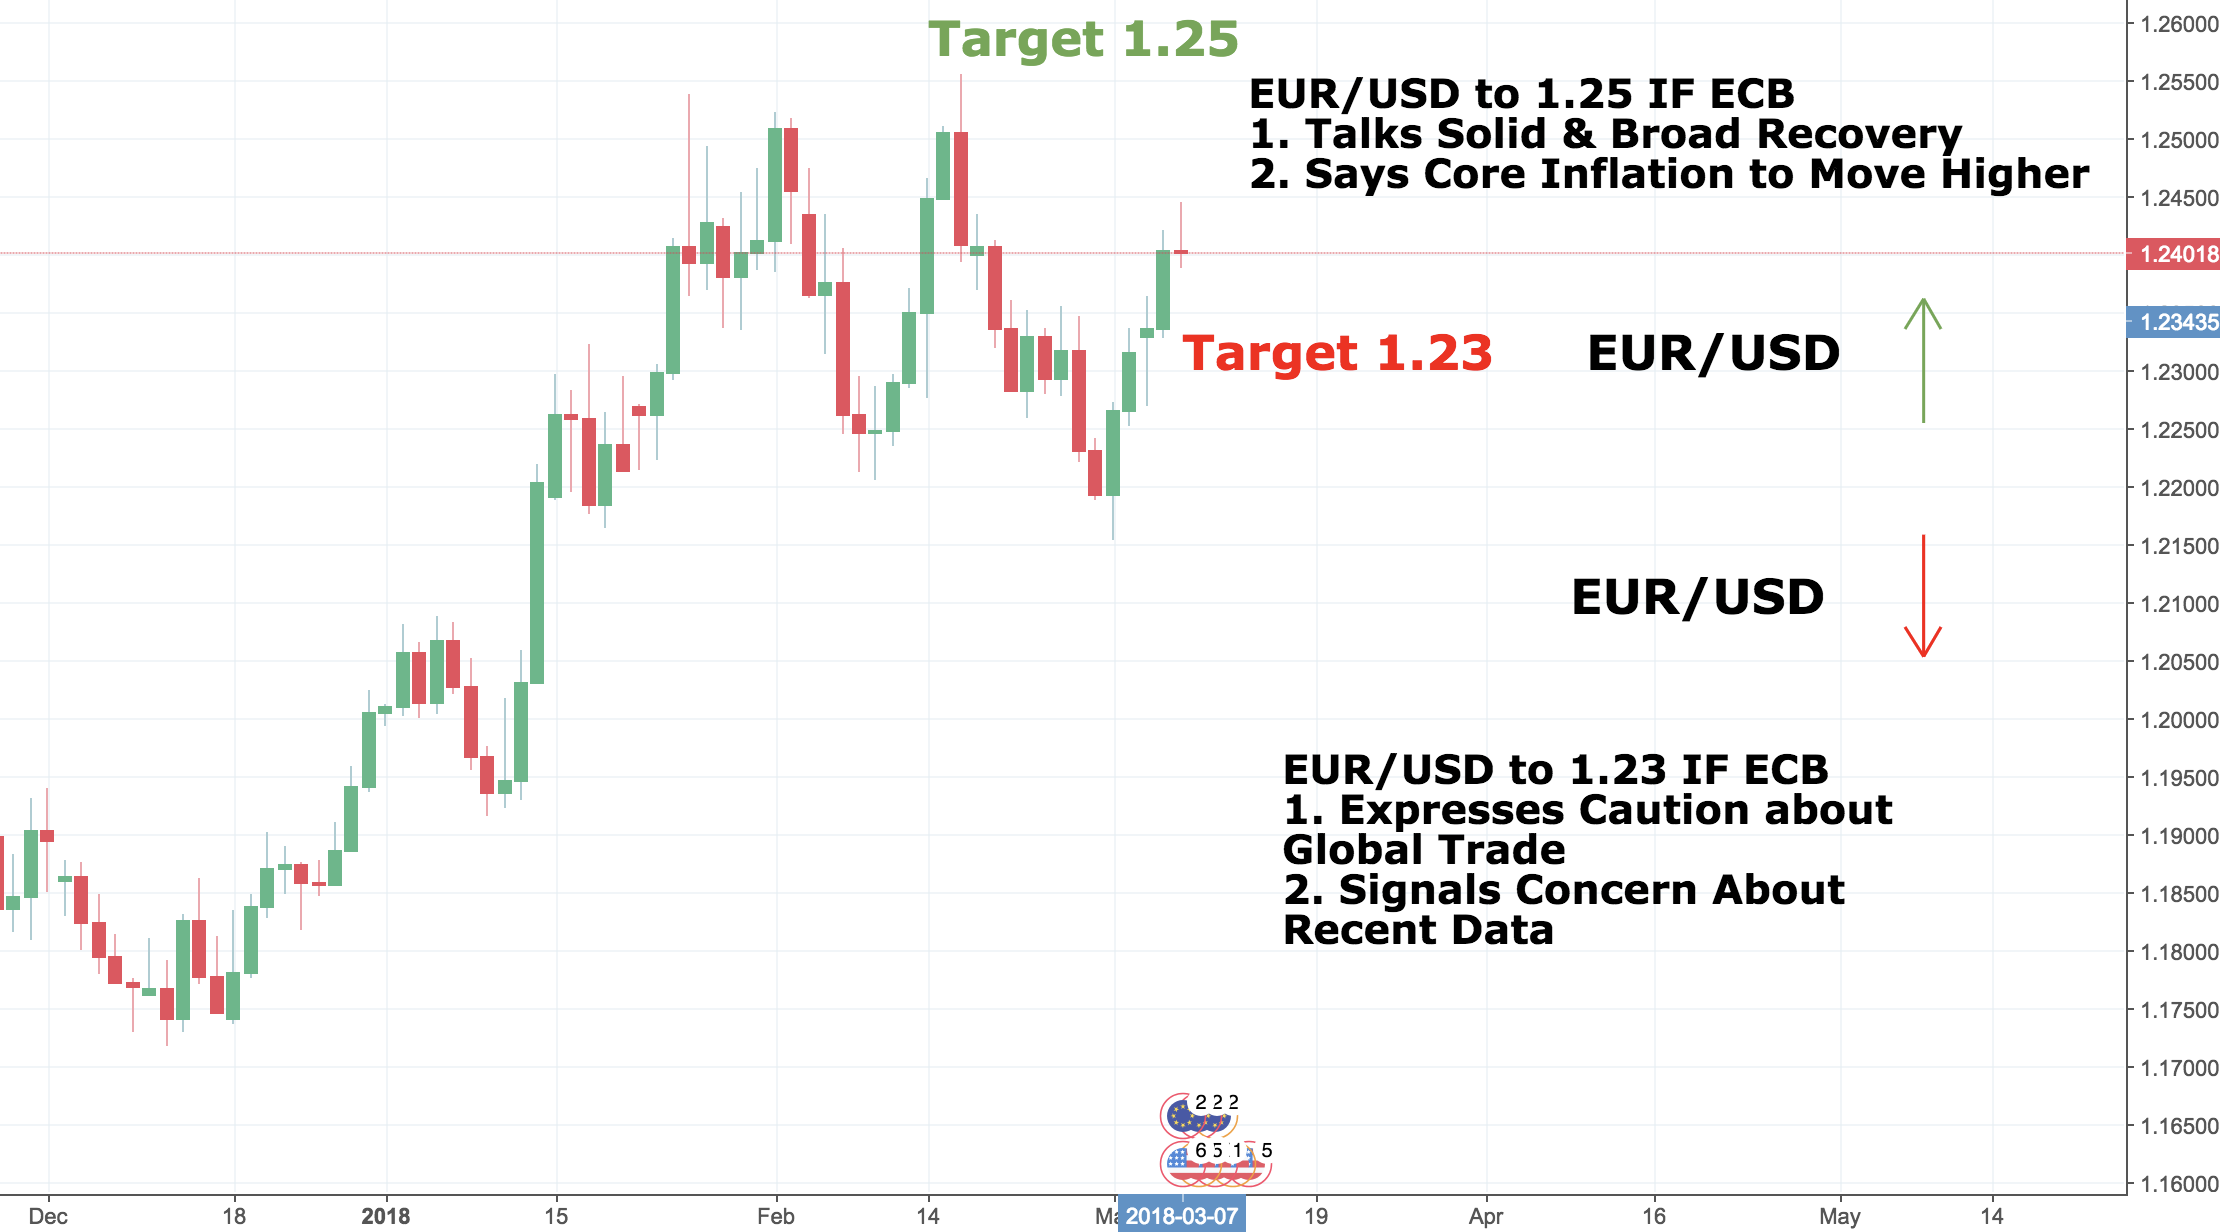 Will ECB Drive EUR to 1.25?